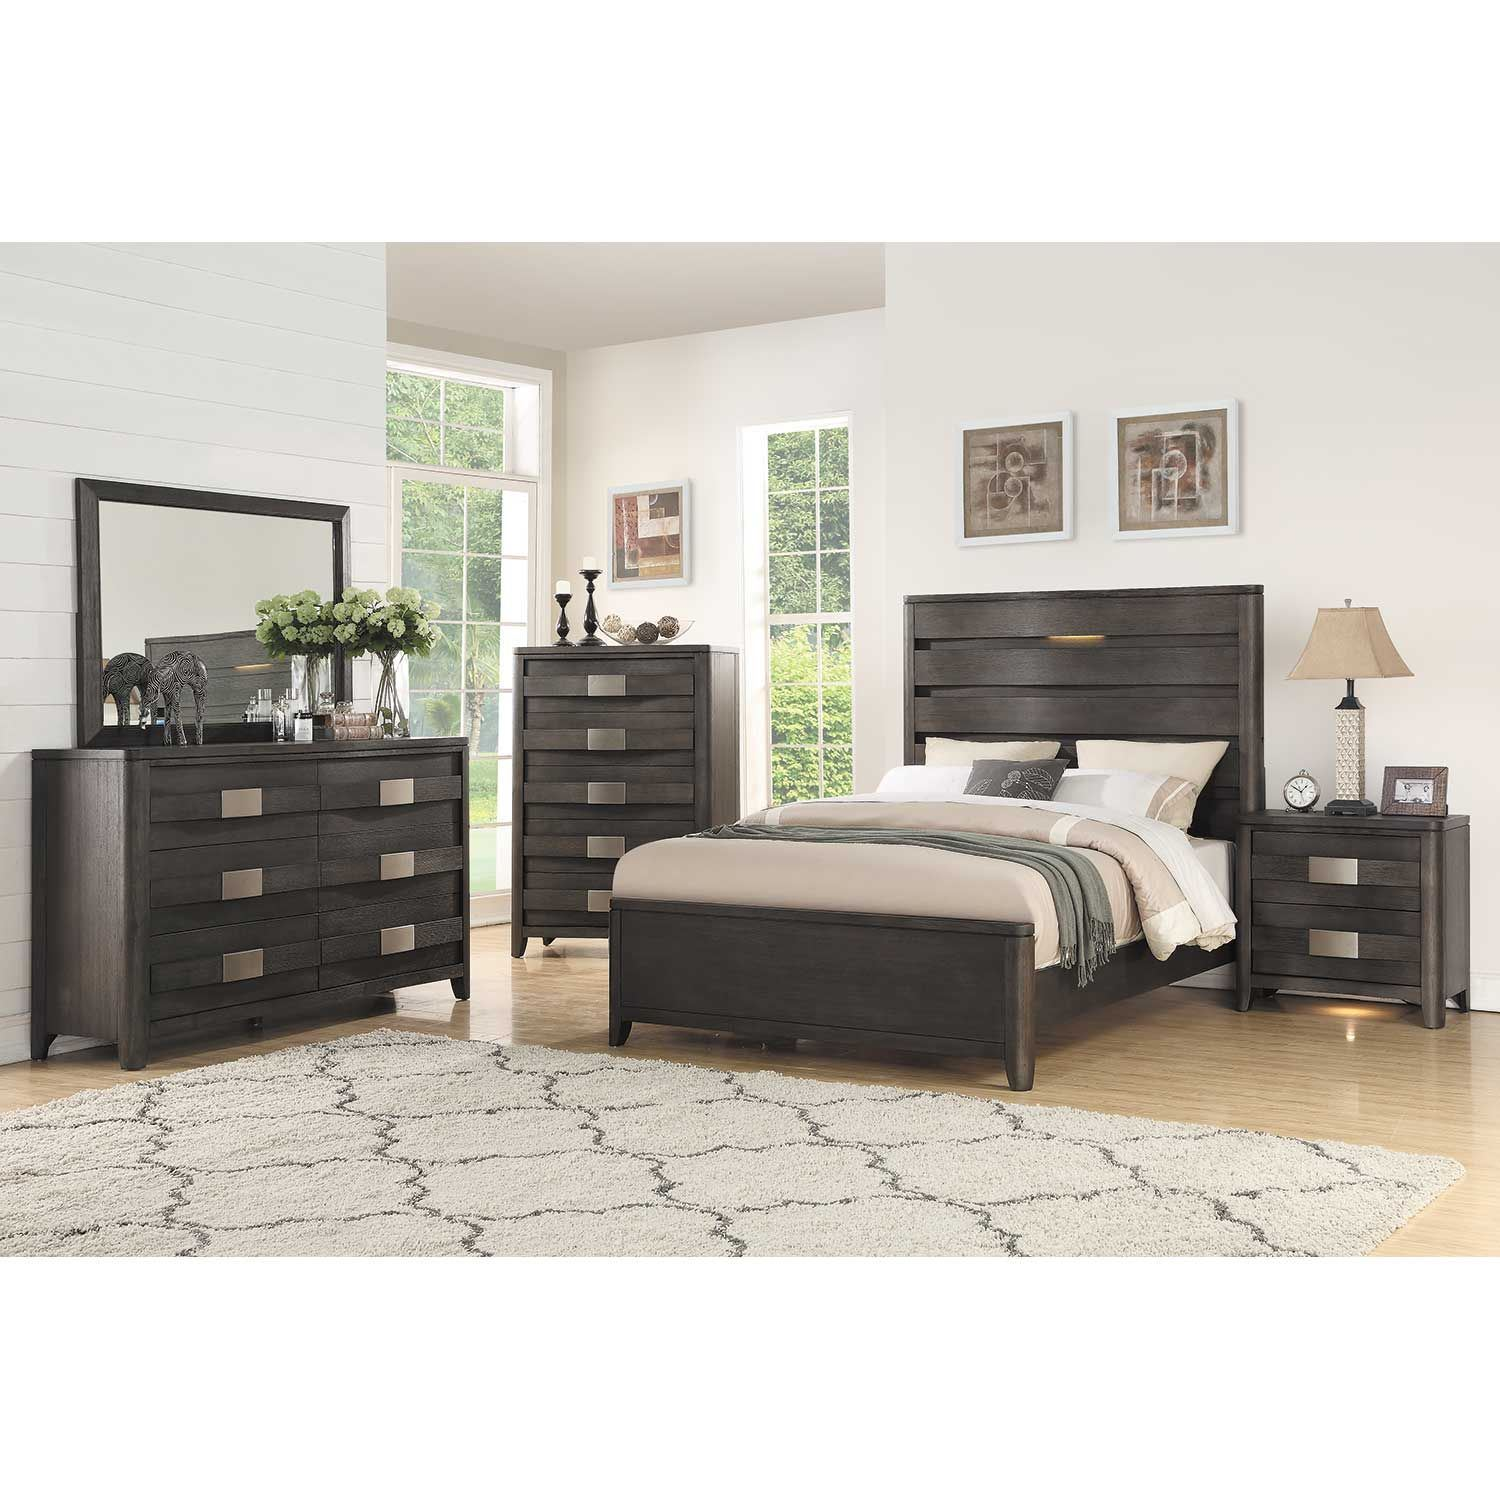 Contour 5 Piece Bedroom Set